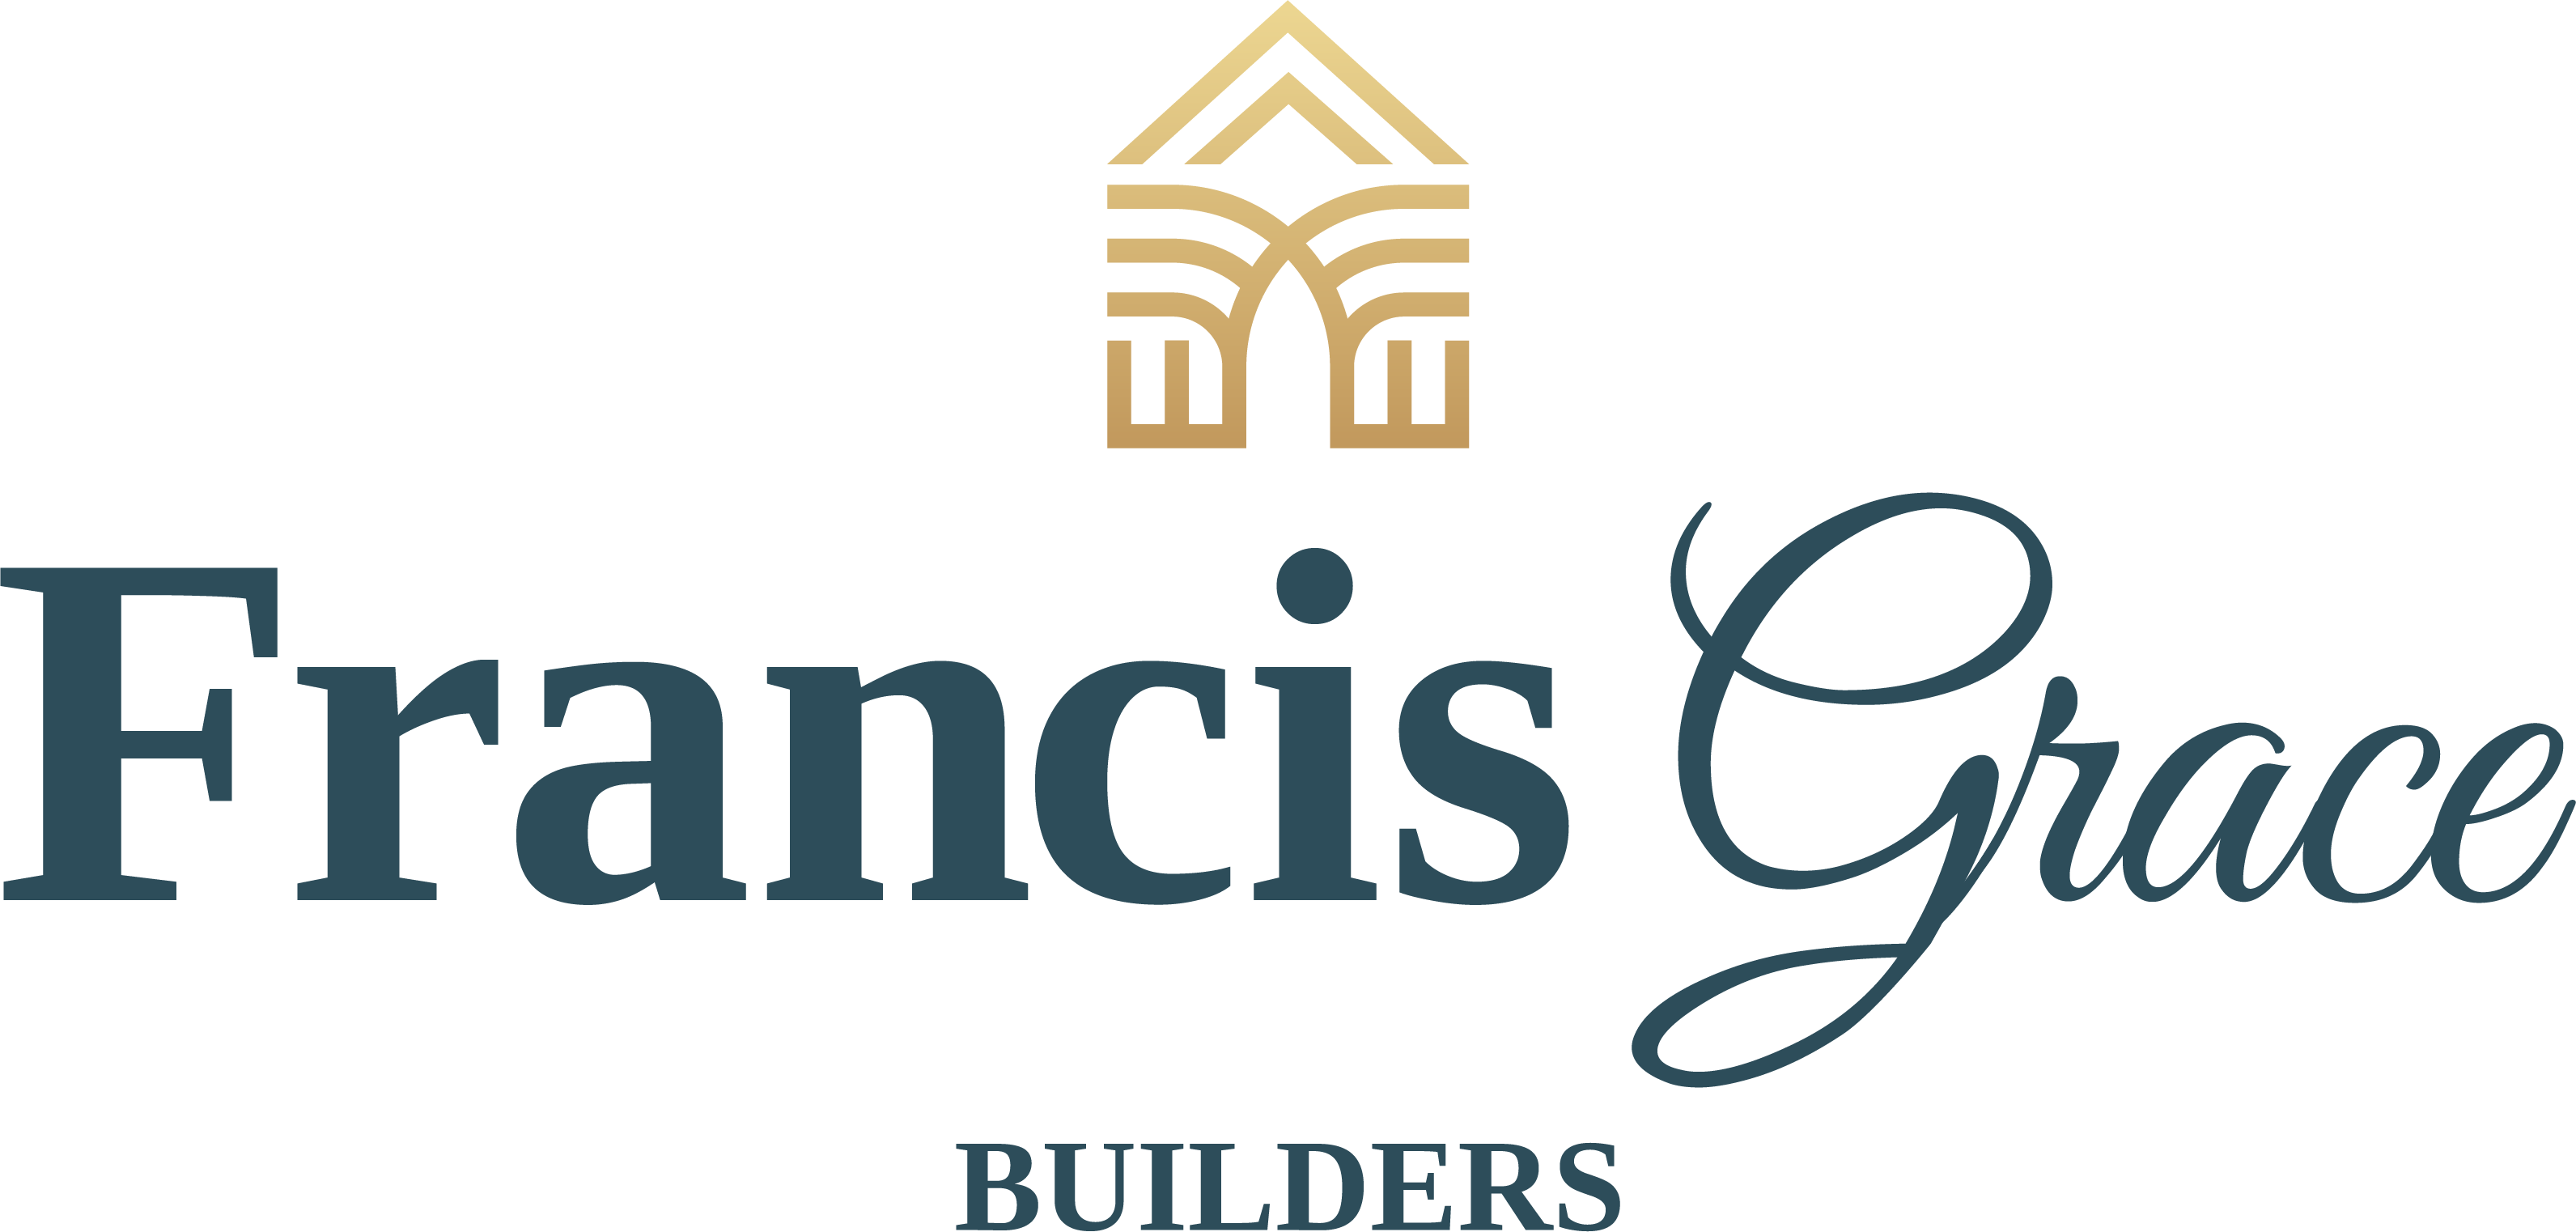 Francis Grace Builders